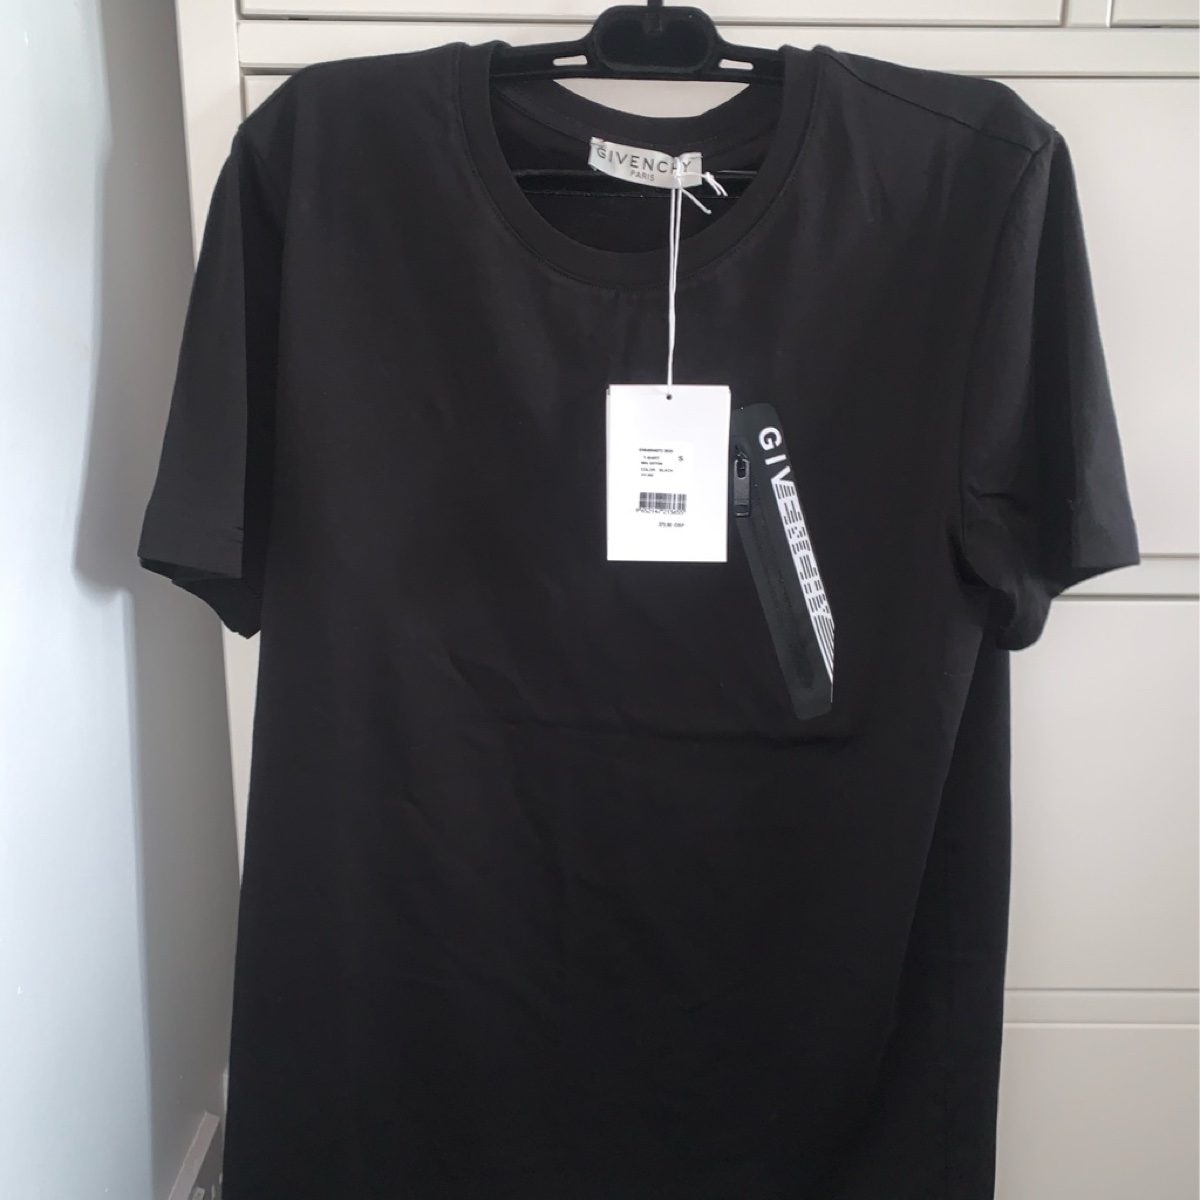 GIVENCHY T-SHIRT WITH ZIPPED POCKET